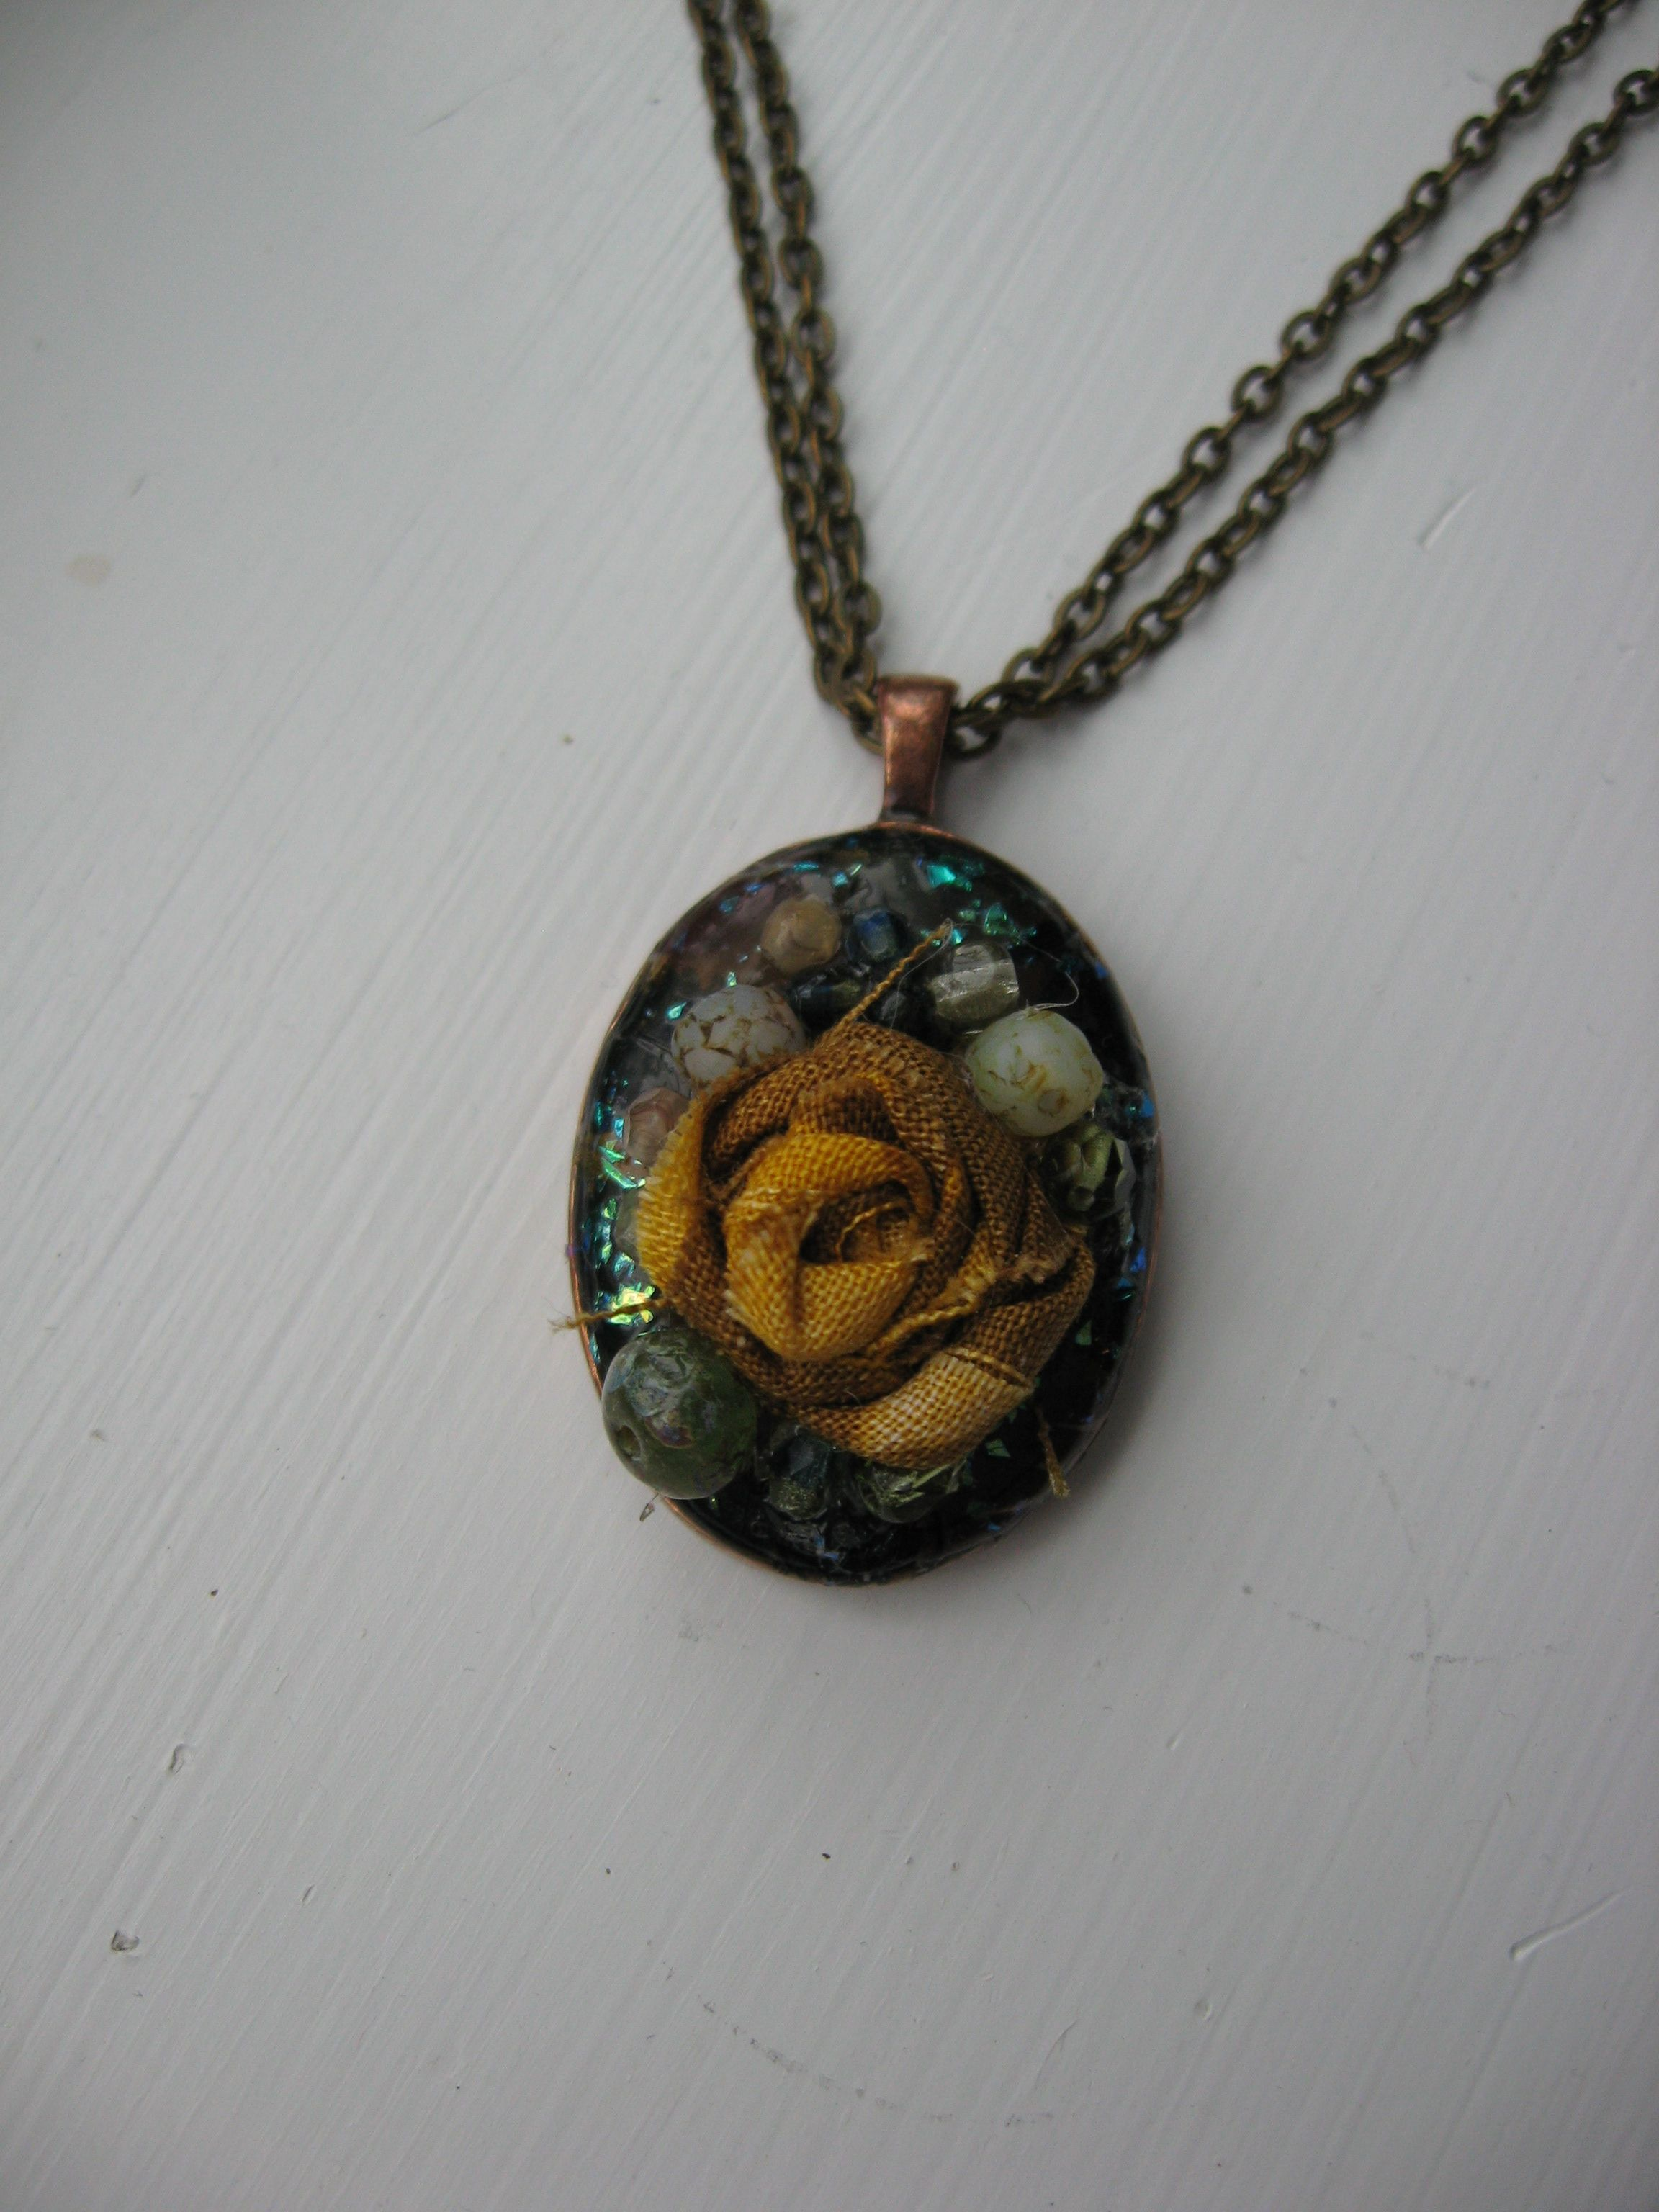 Fabric rose with beads